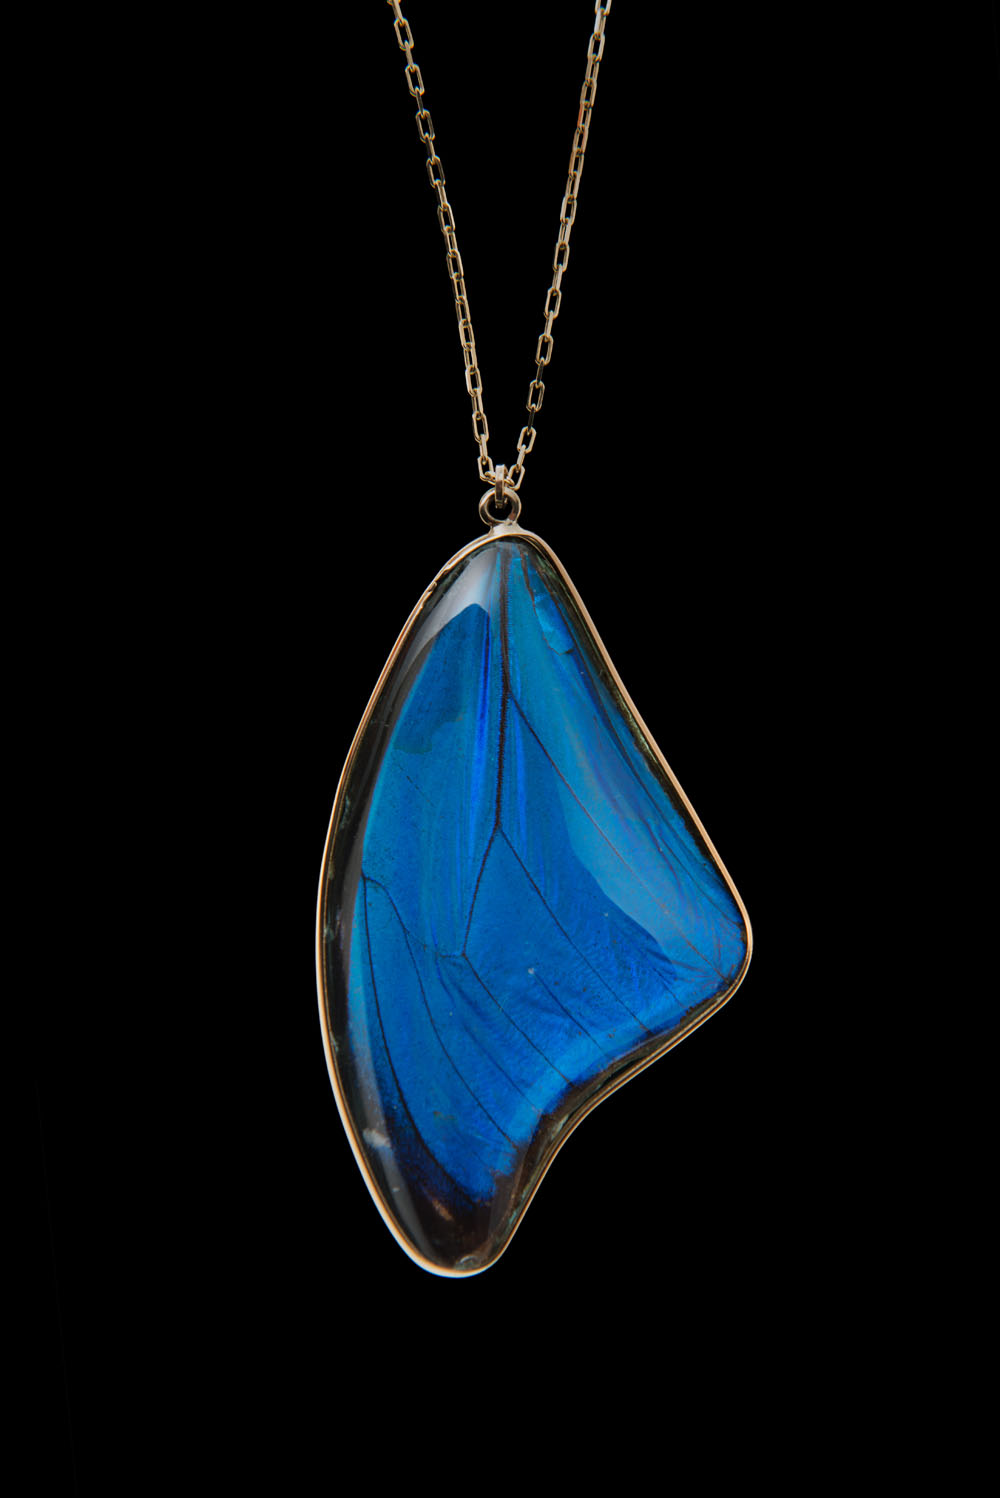 The It S Complicated Necklace Blue Morpho Jewelry